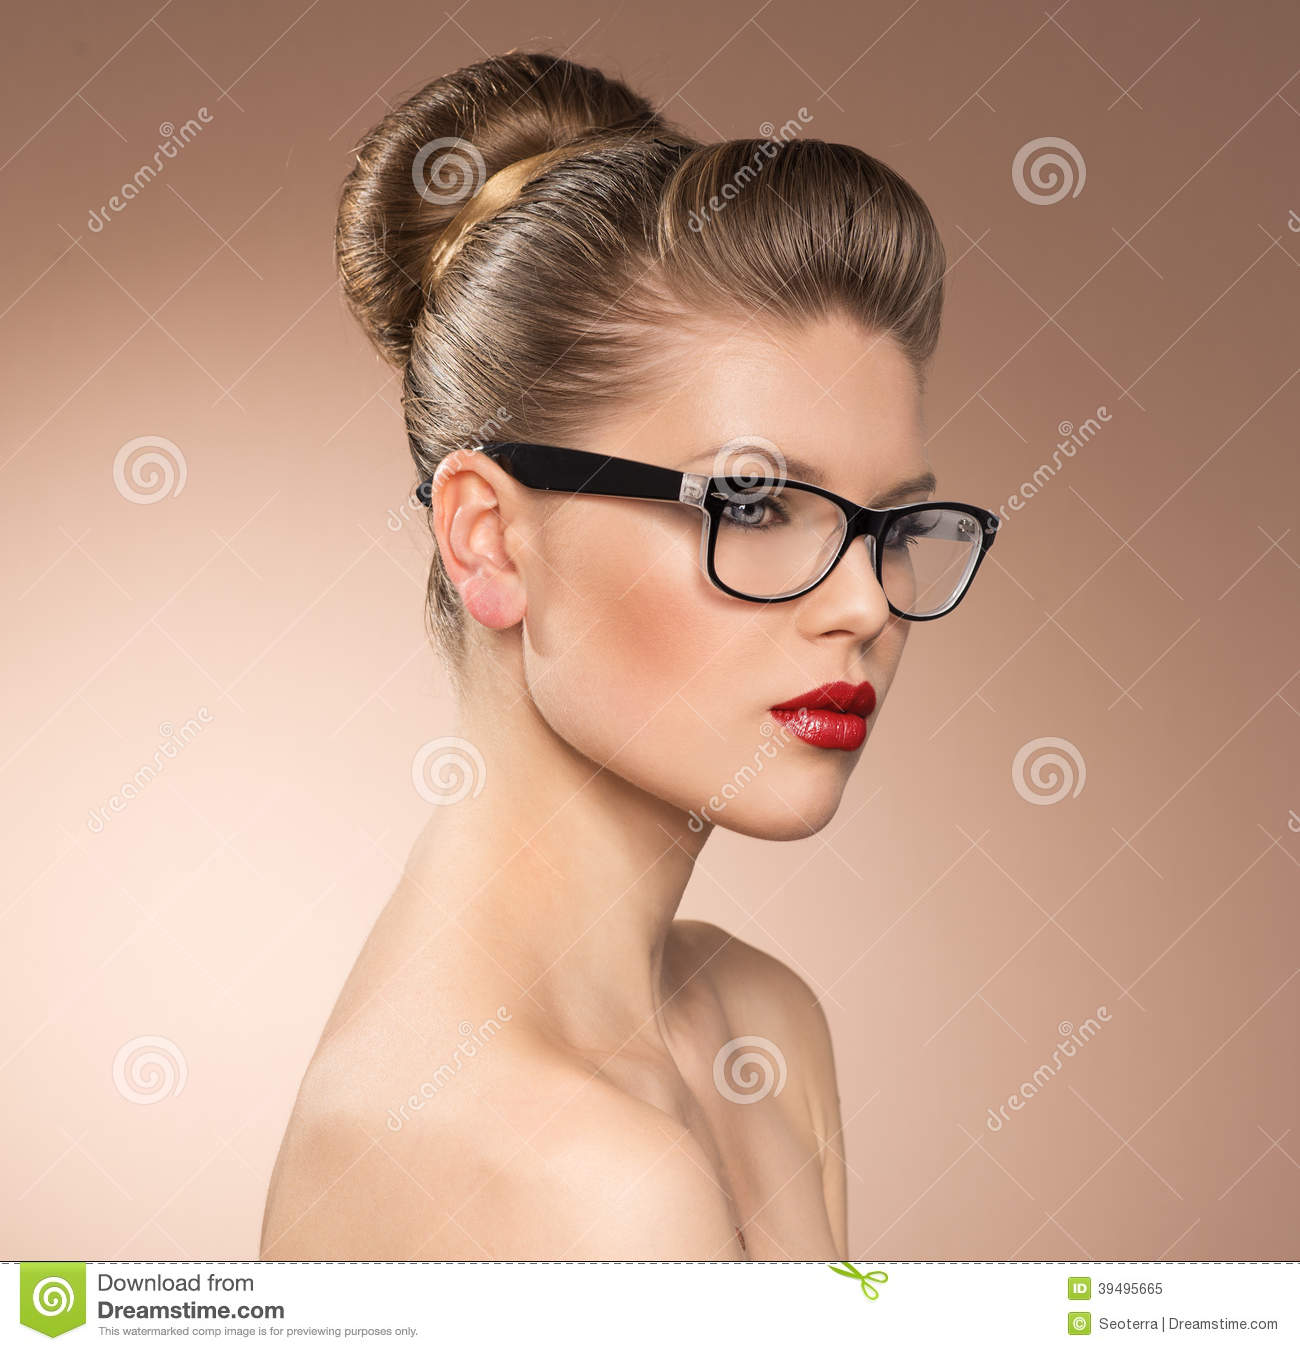 4afe4f30da Strict vintage style lady with red lipstick wearing spectacles. Eyewear  glasses woman closeup portrait.